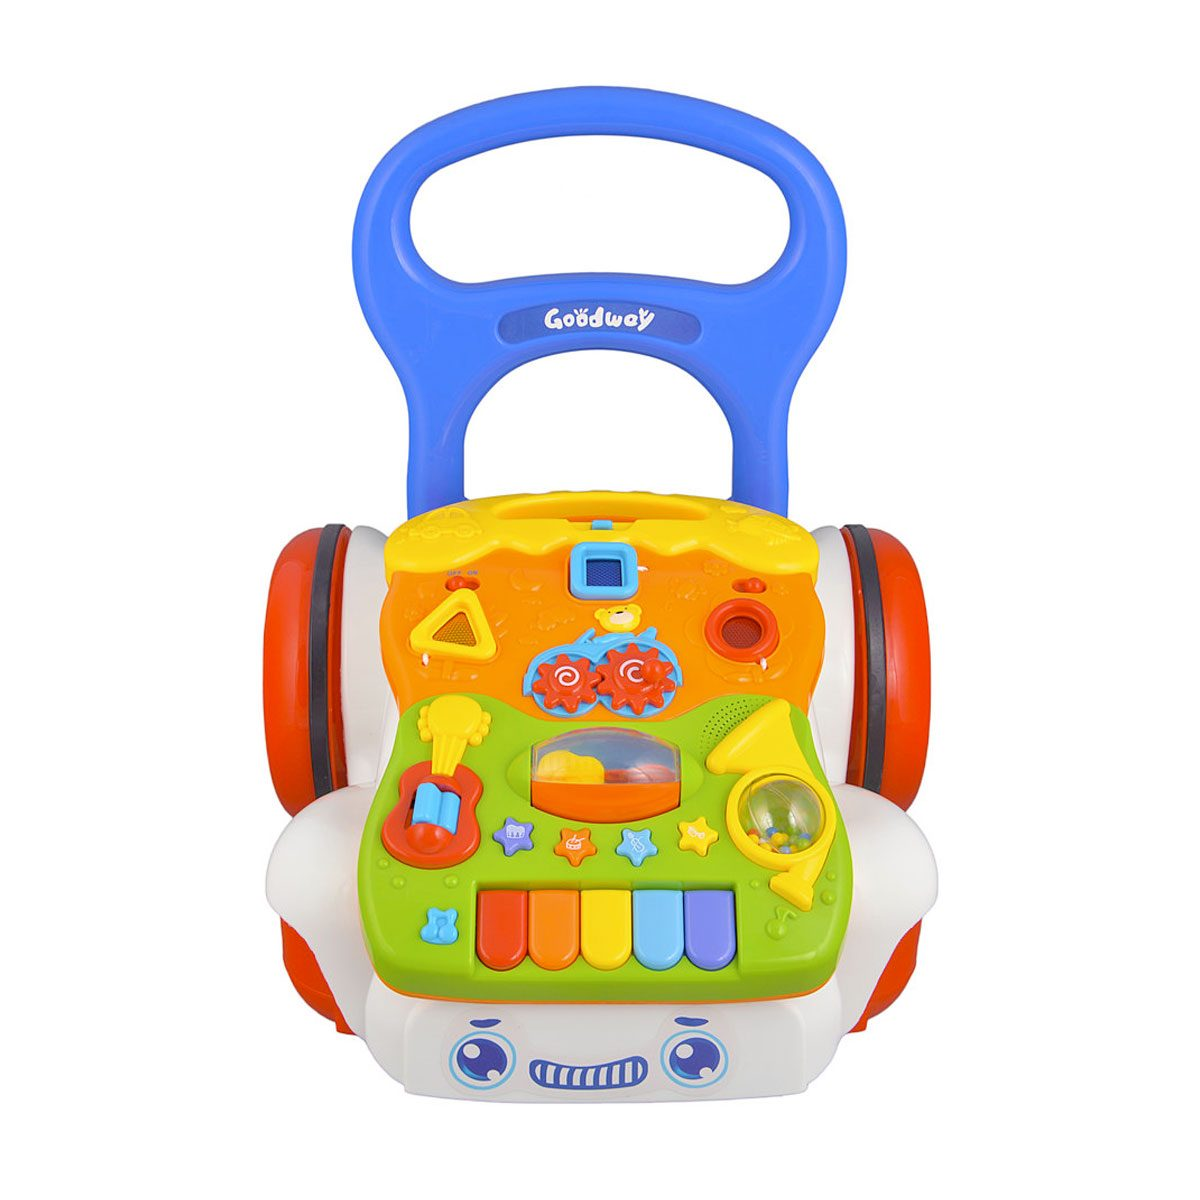 The baby walker features a colourful and dun activity panel